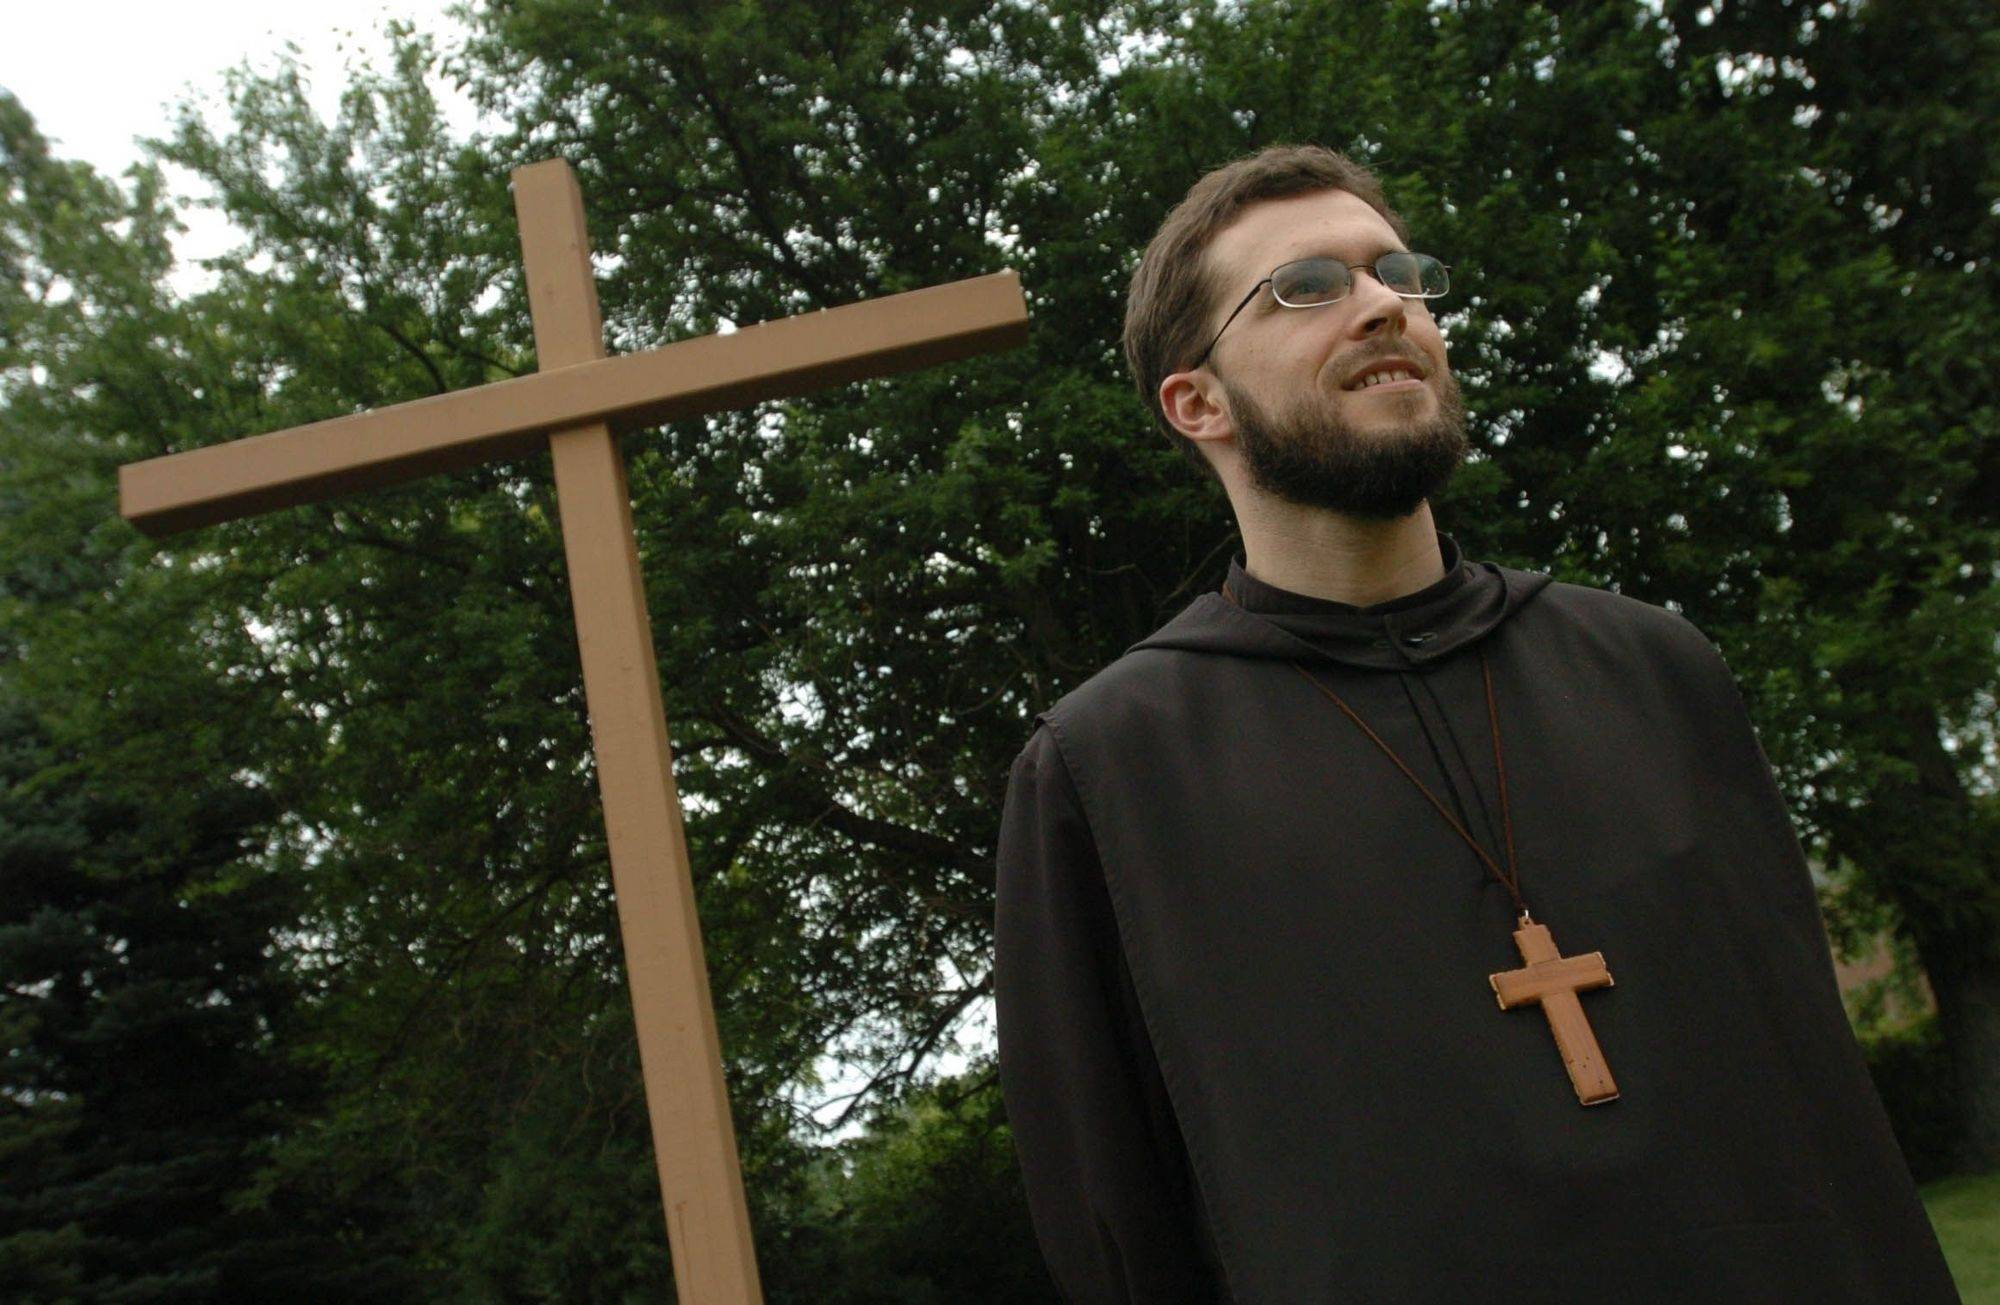 The Rev. Austin G. Murphy is the youngest monk at St. Procopius Abbey in Lisle - and its newest abbott.